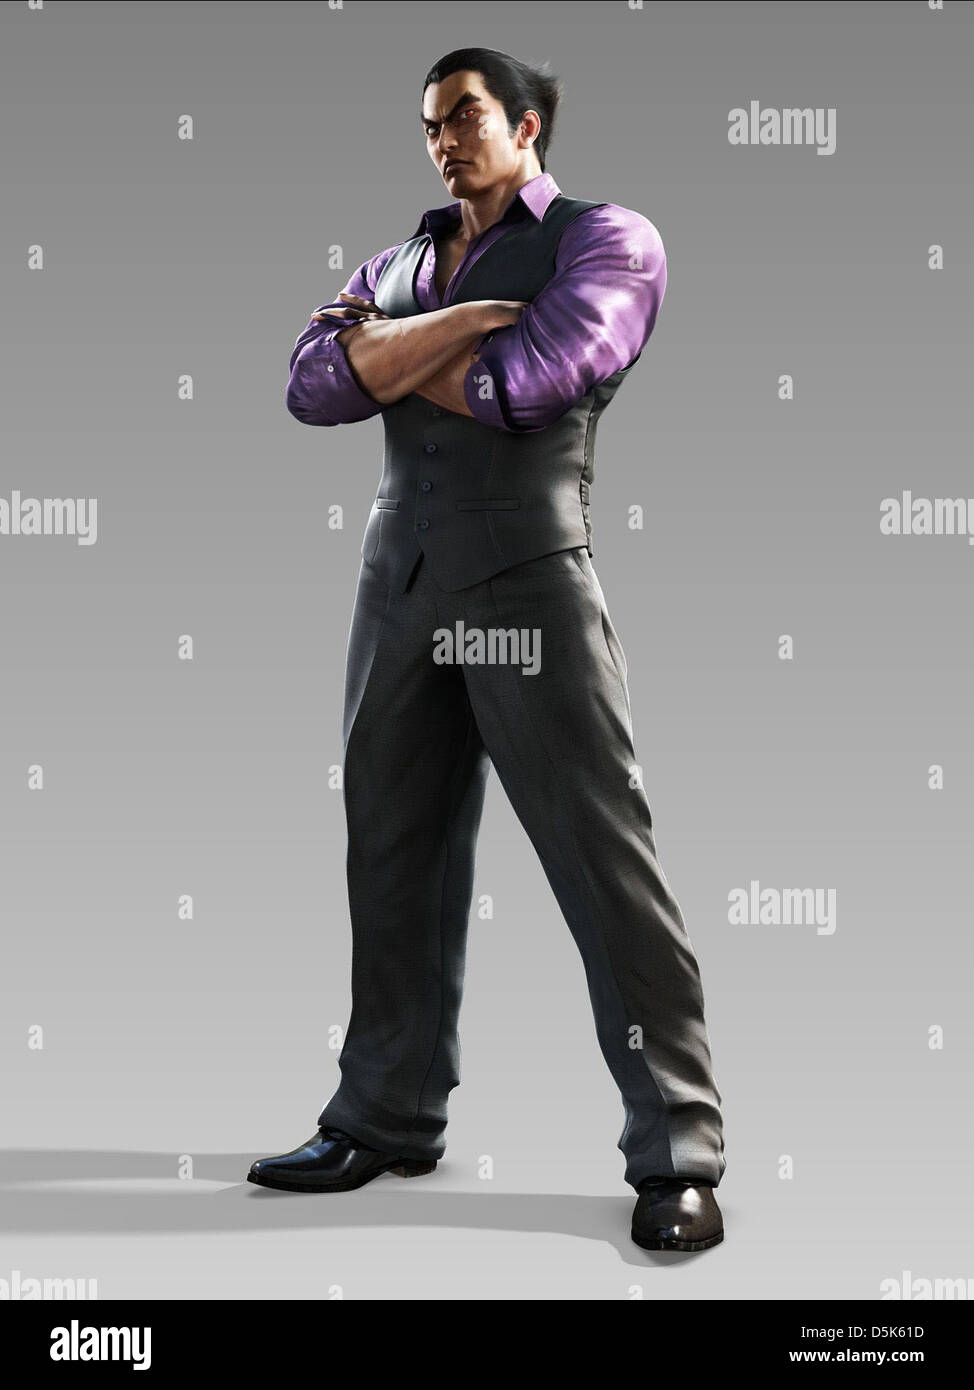 Kazuya Mishima Tekken Blood Vengeance 2011 Stock Photo Alamy